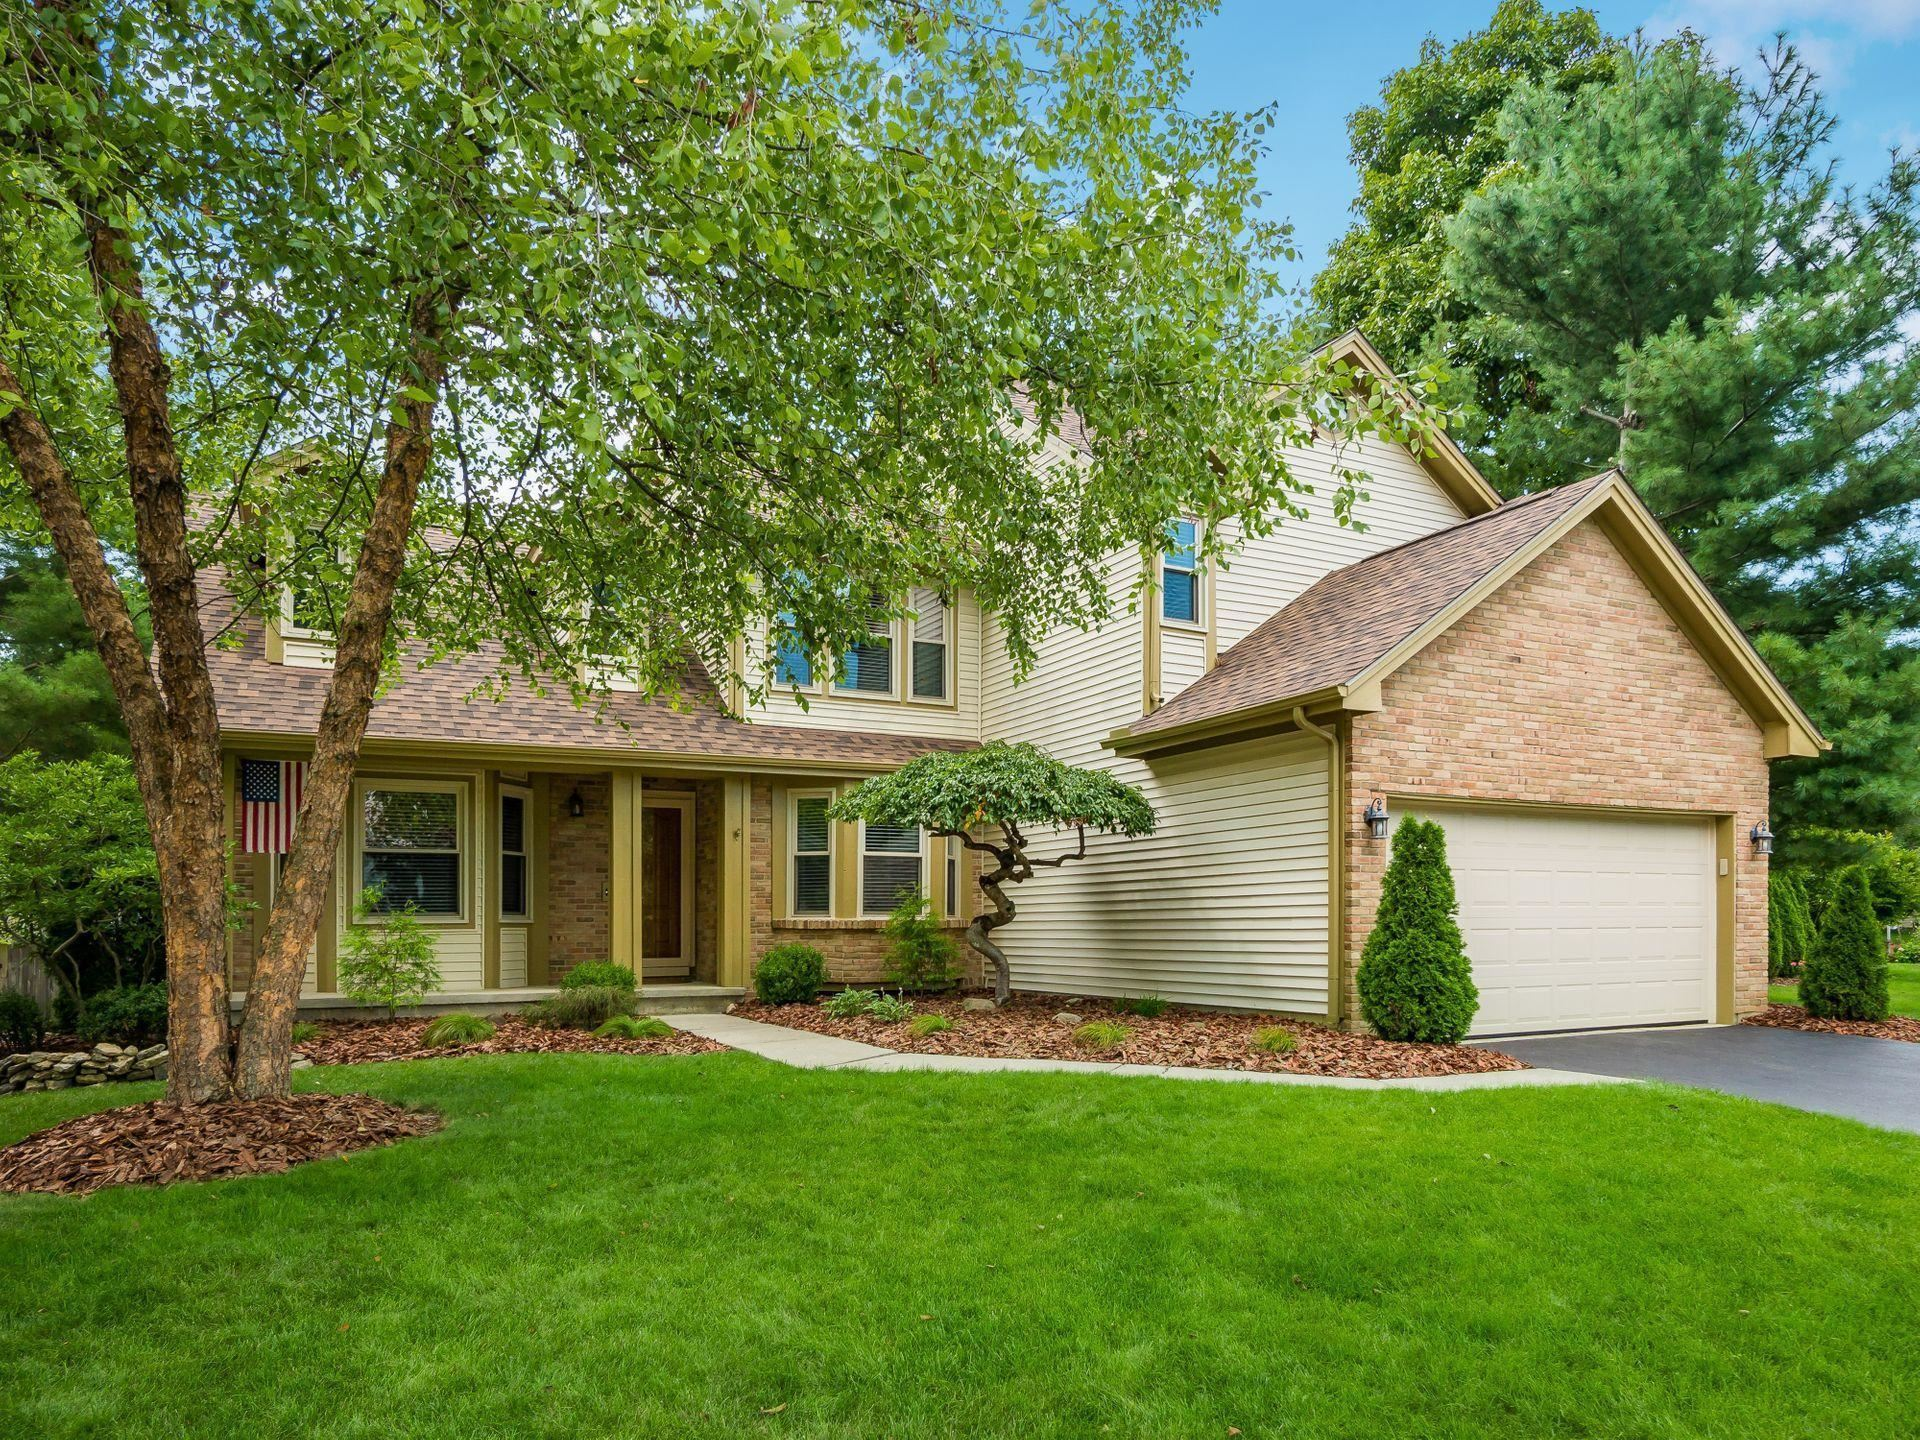 Photo of 8559 Halley Drive, Dublin, OH 43016 (MLS # 221036385)